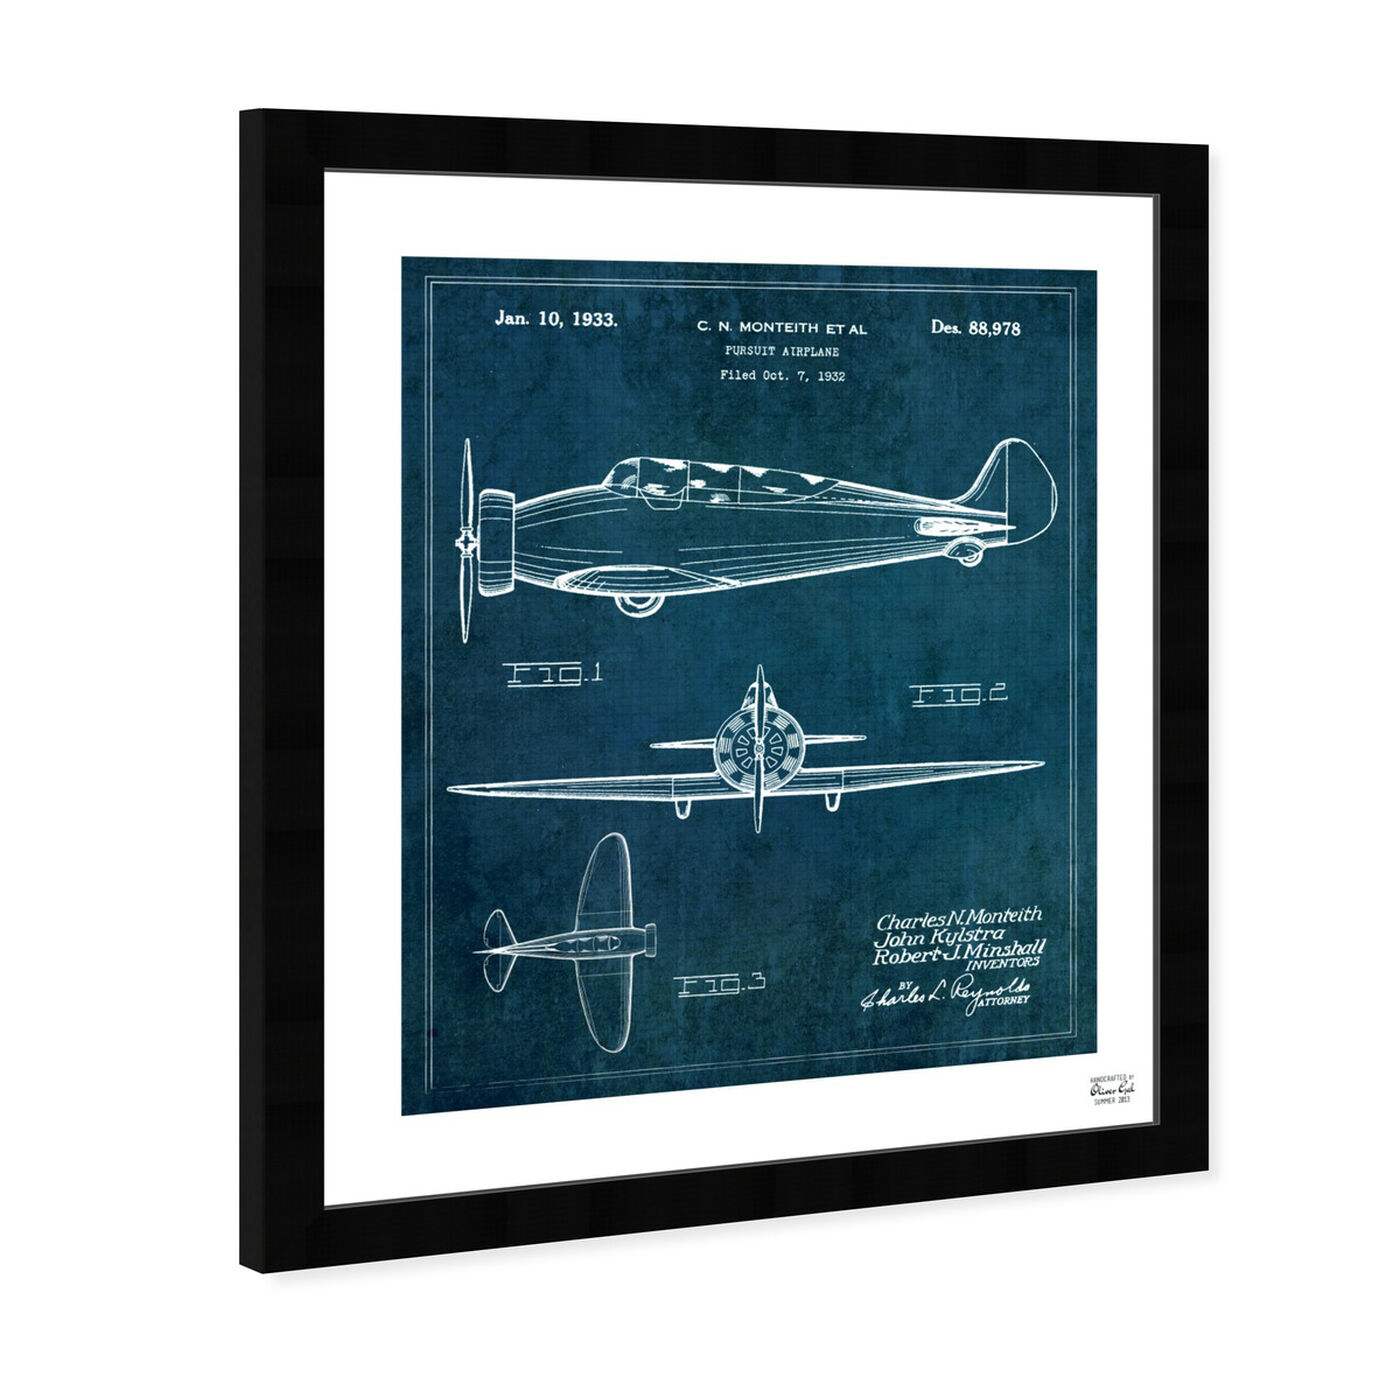 Angled view of Pursuit Airplane 1933 featuring transportation and airplanes art.